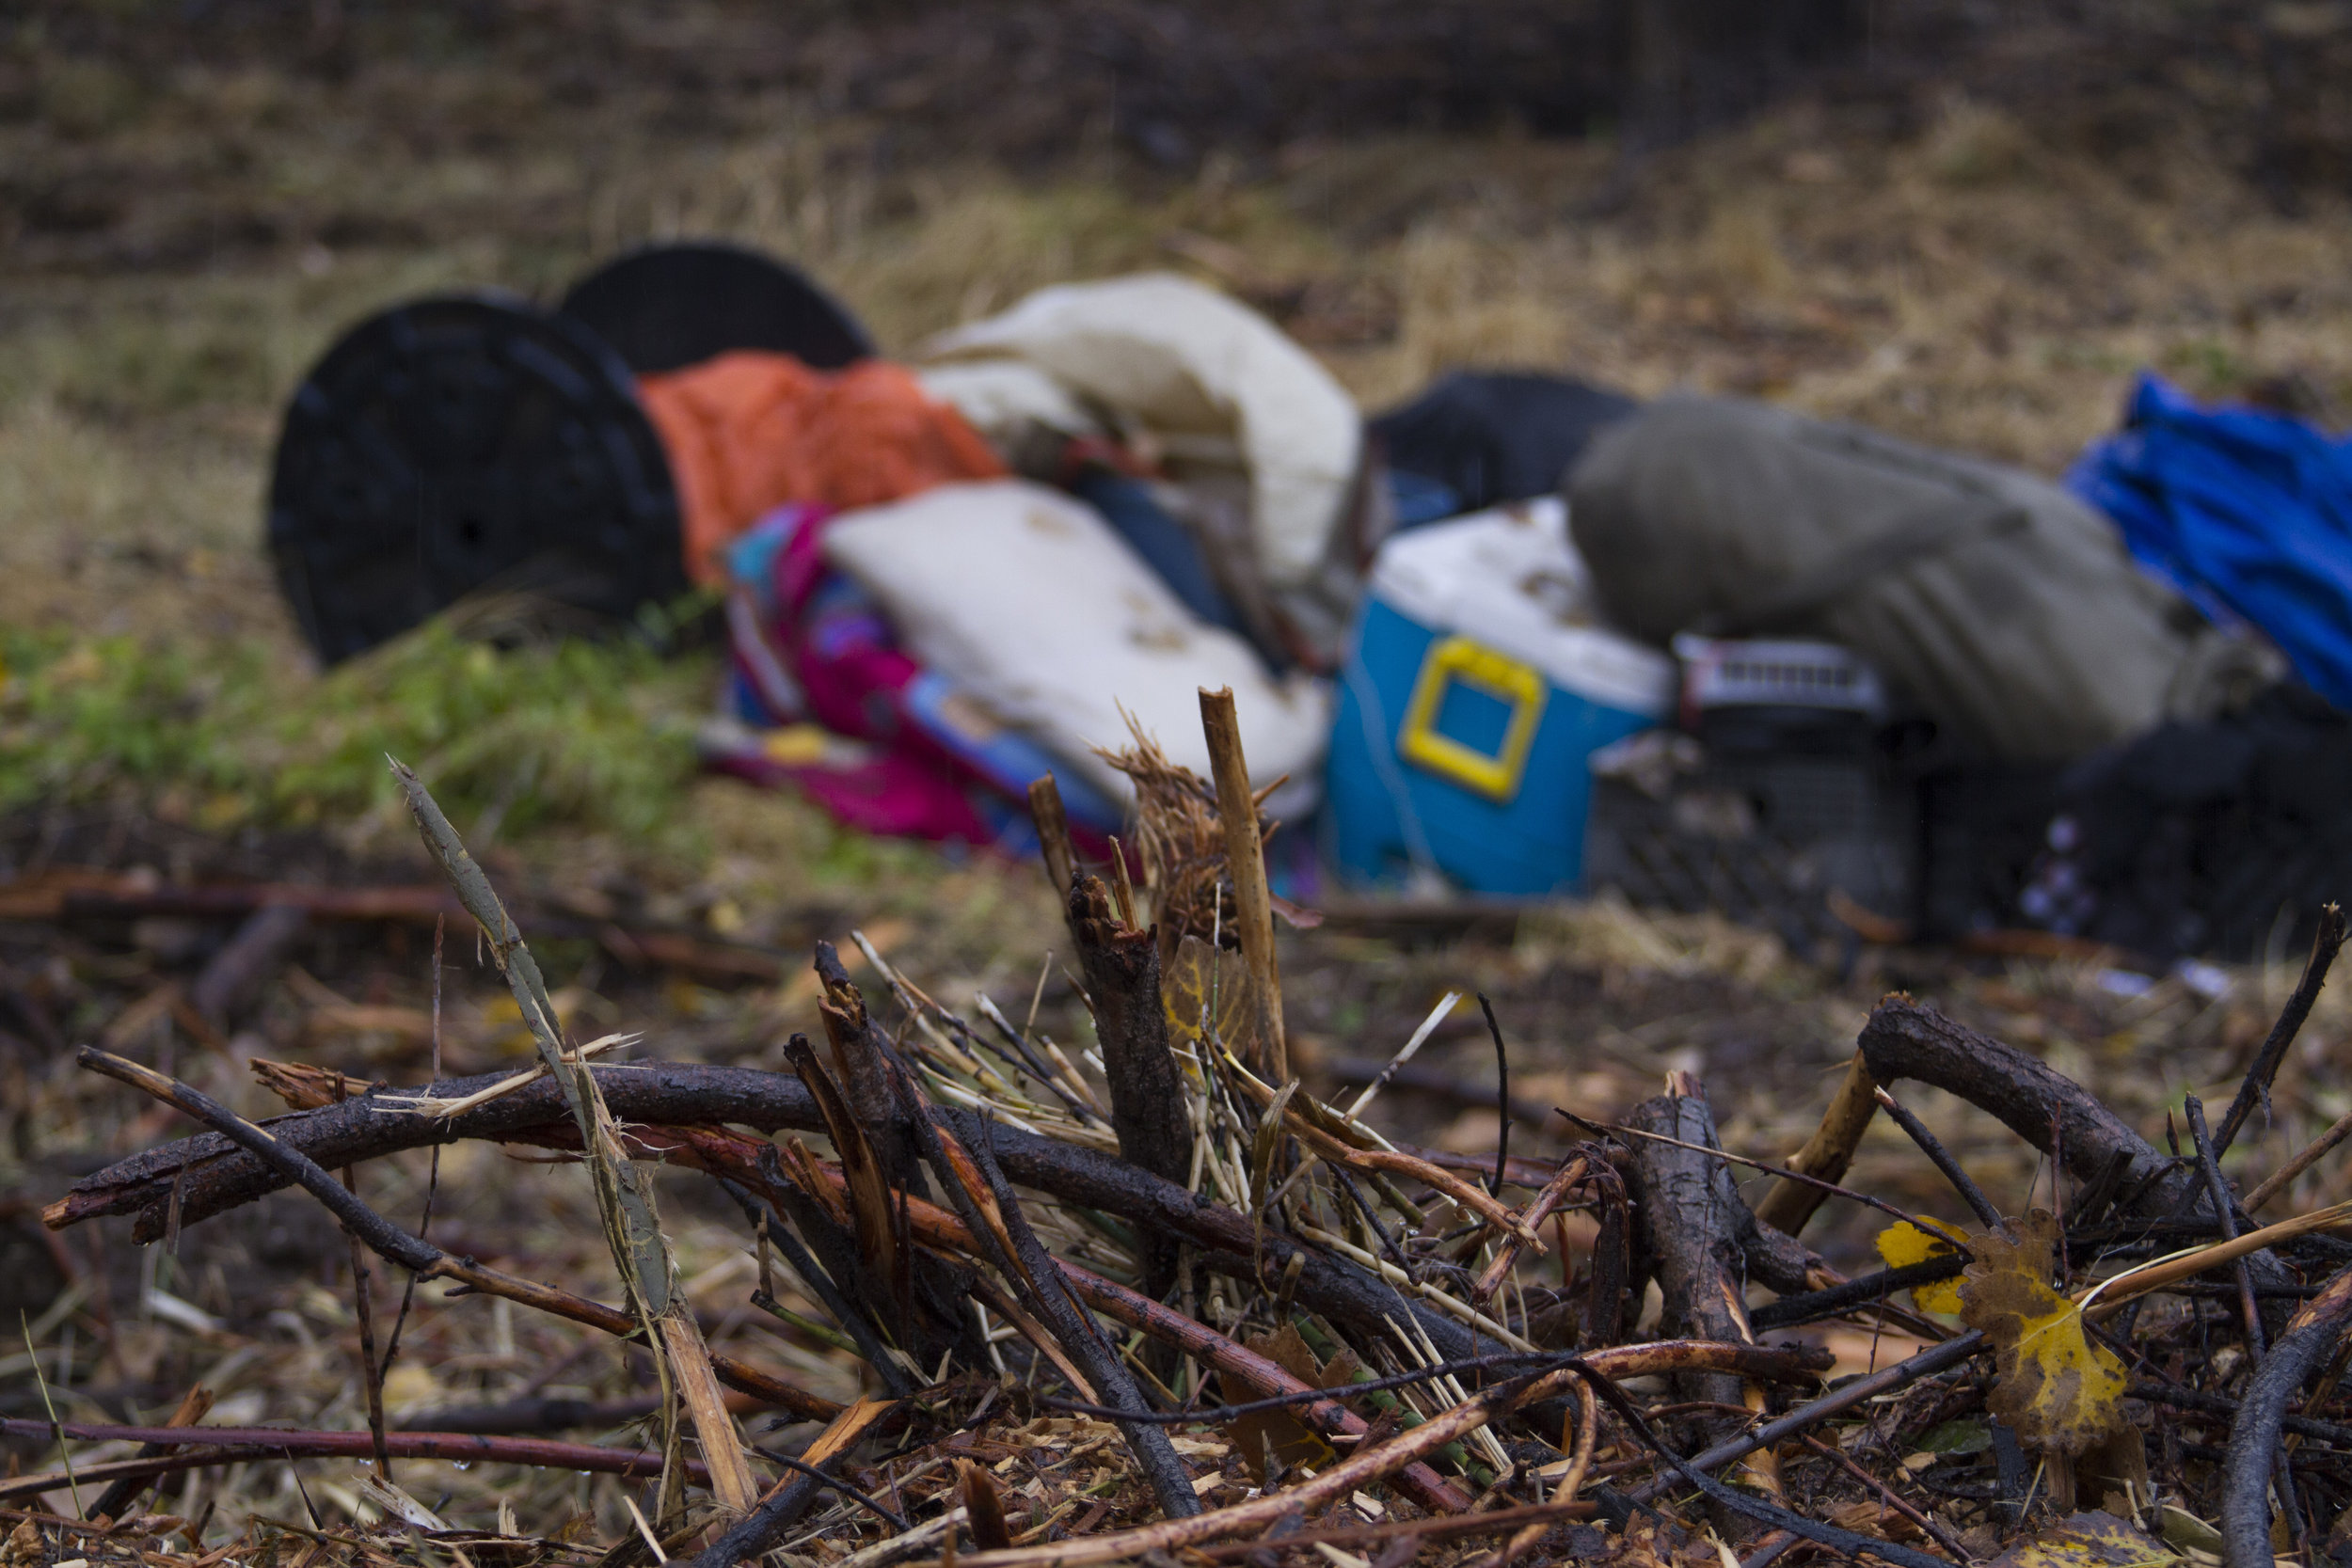 A homeless person's property can be seen in the background while remnants of chainsawed brush sits in the foreground,